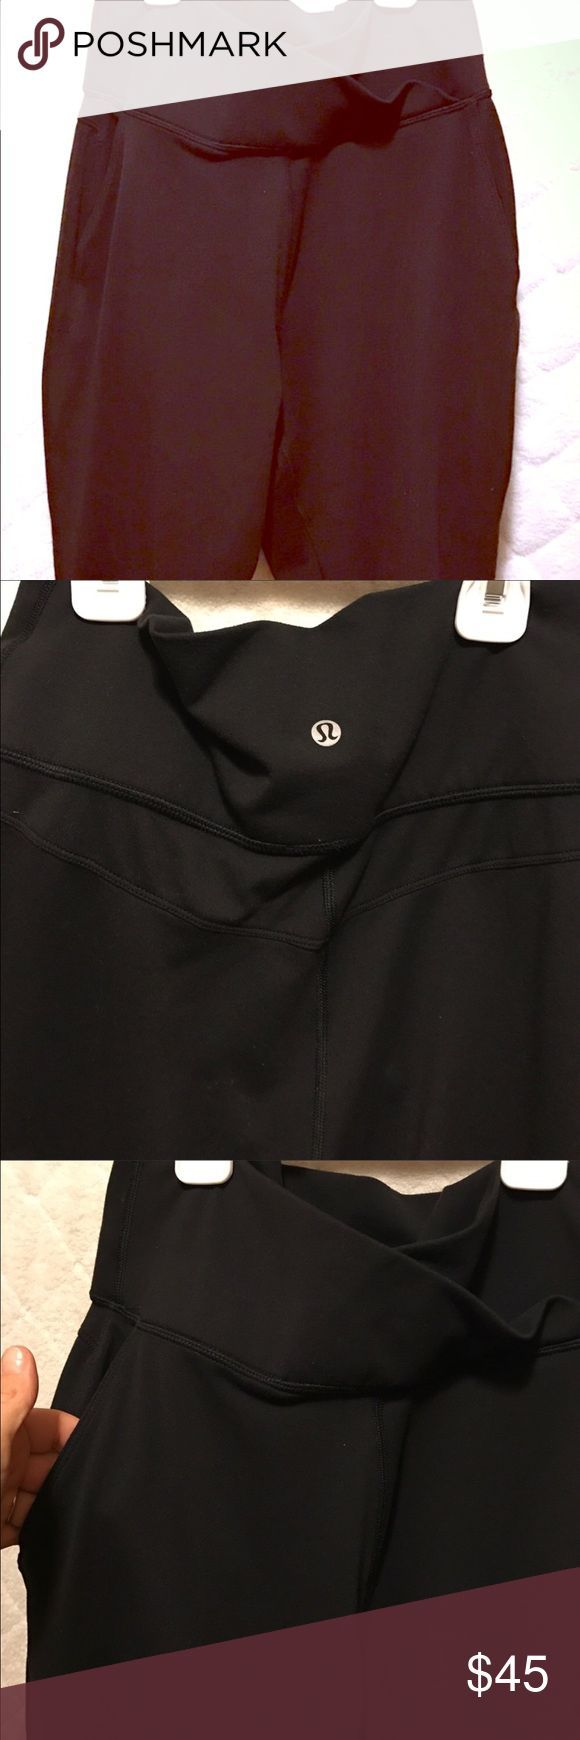 (((Sold)))Lululemon pants Similar to herms style lulus lose front fitting can do high waist or can come down to show the crisscross design. Super comfortable. 7/8 length lululemon athletica Pants Track Pants & Joggers